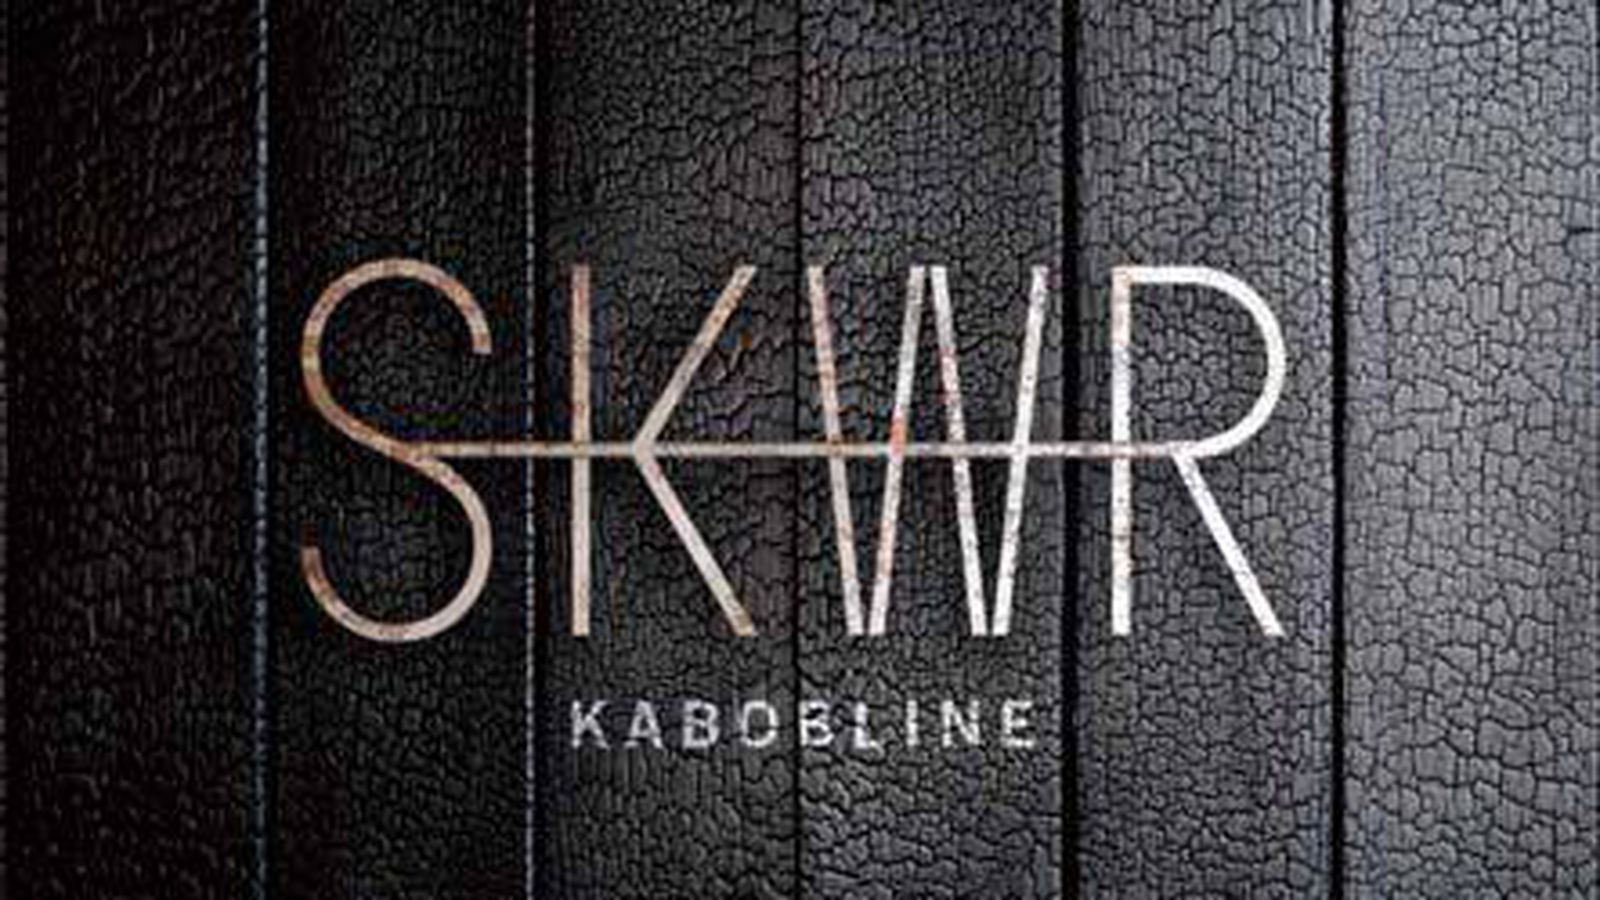 SKWR to Open Next Year with Kabobs (and Without Vowels)